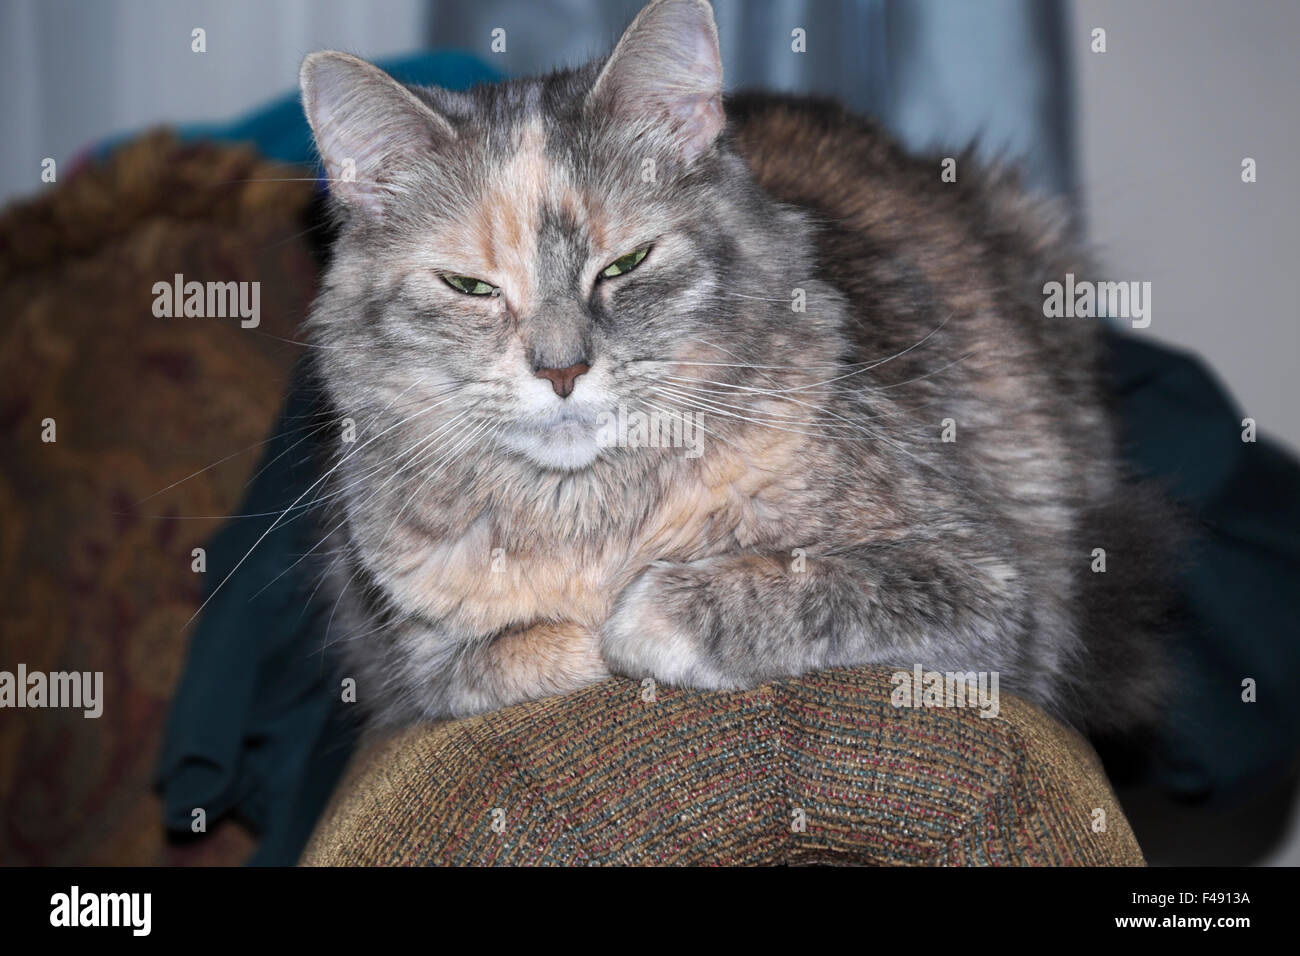 """A child's pet cat, called """"Crabby Cat."""" Stock Photo"""